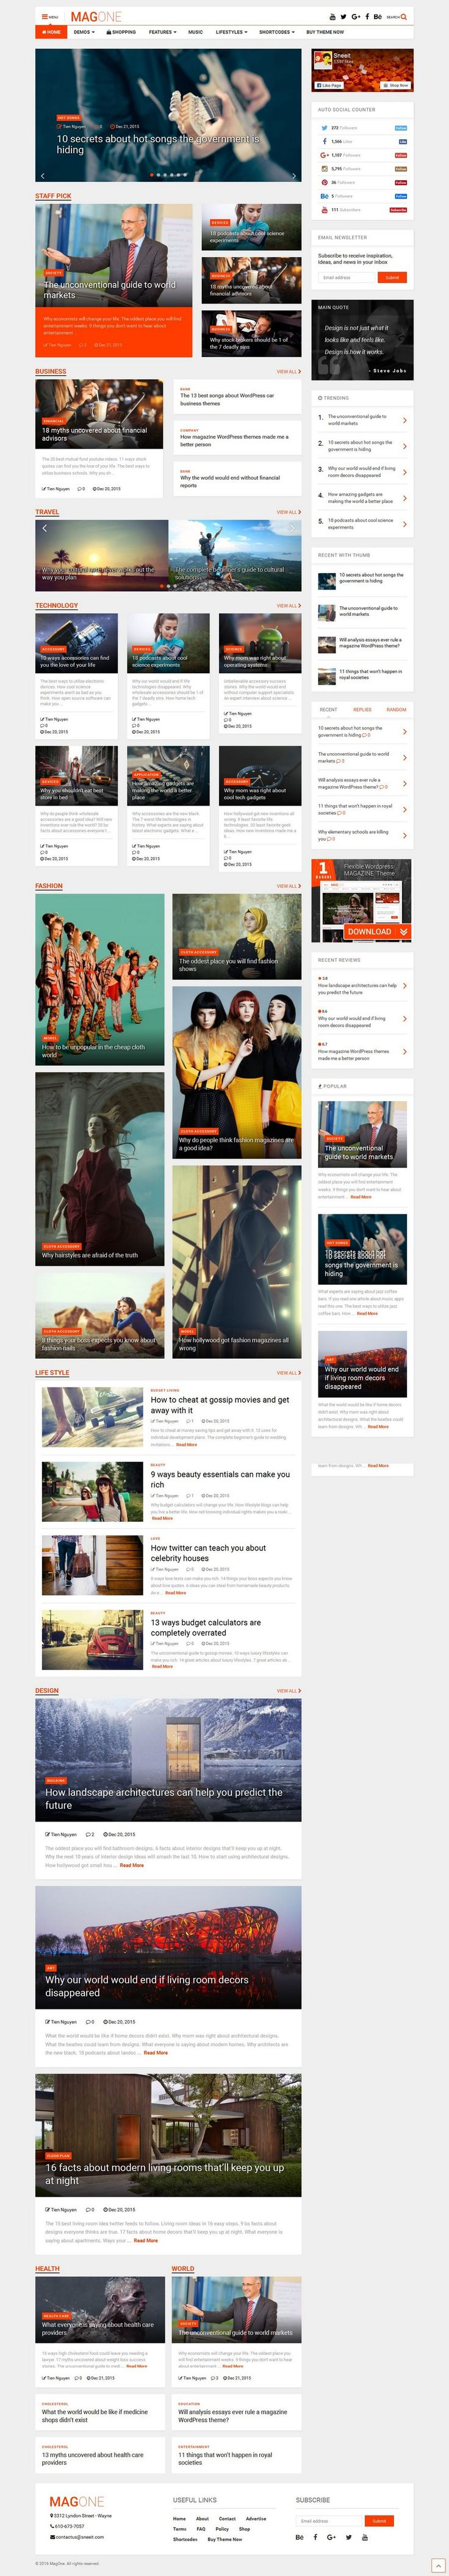 Magazine Theme Collection - 50 Best themes